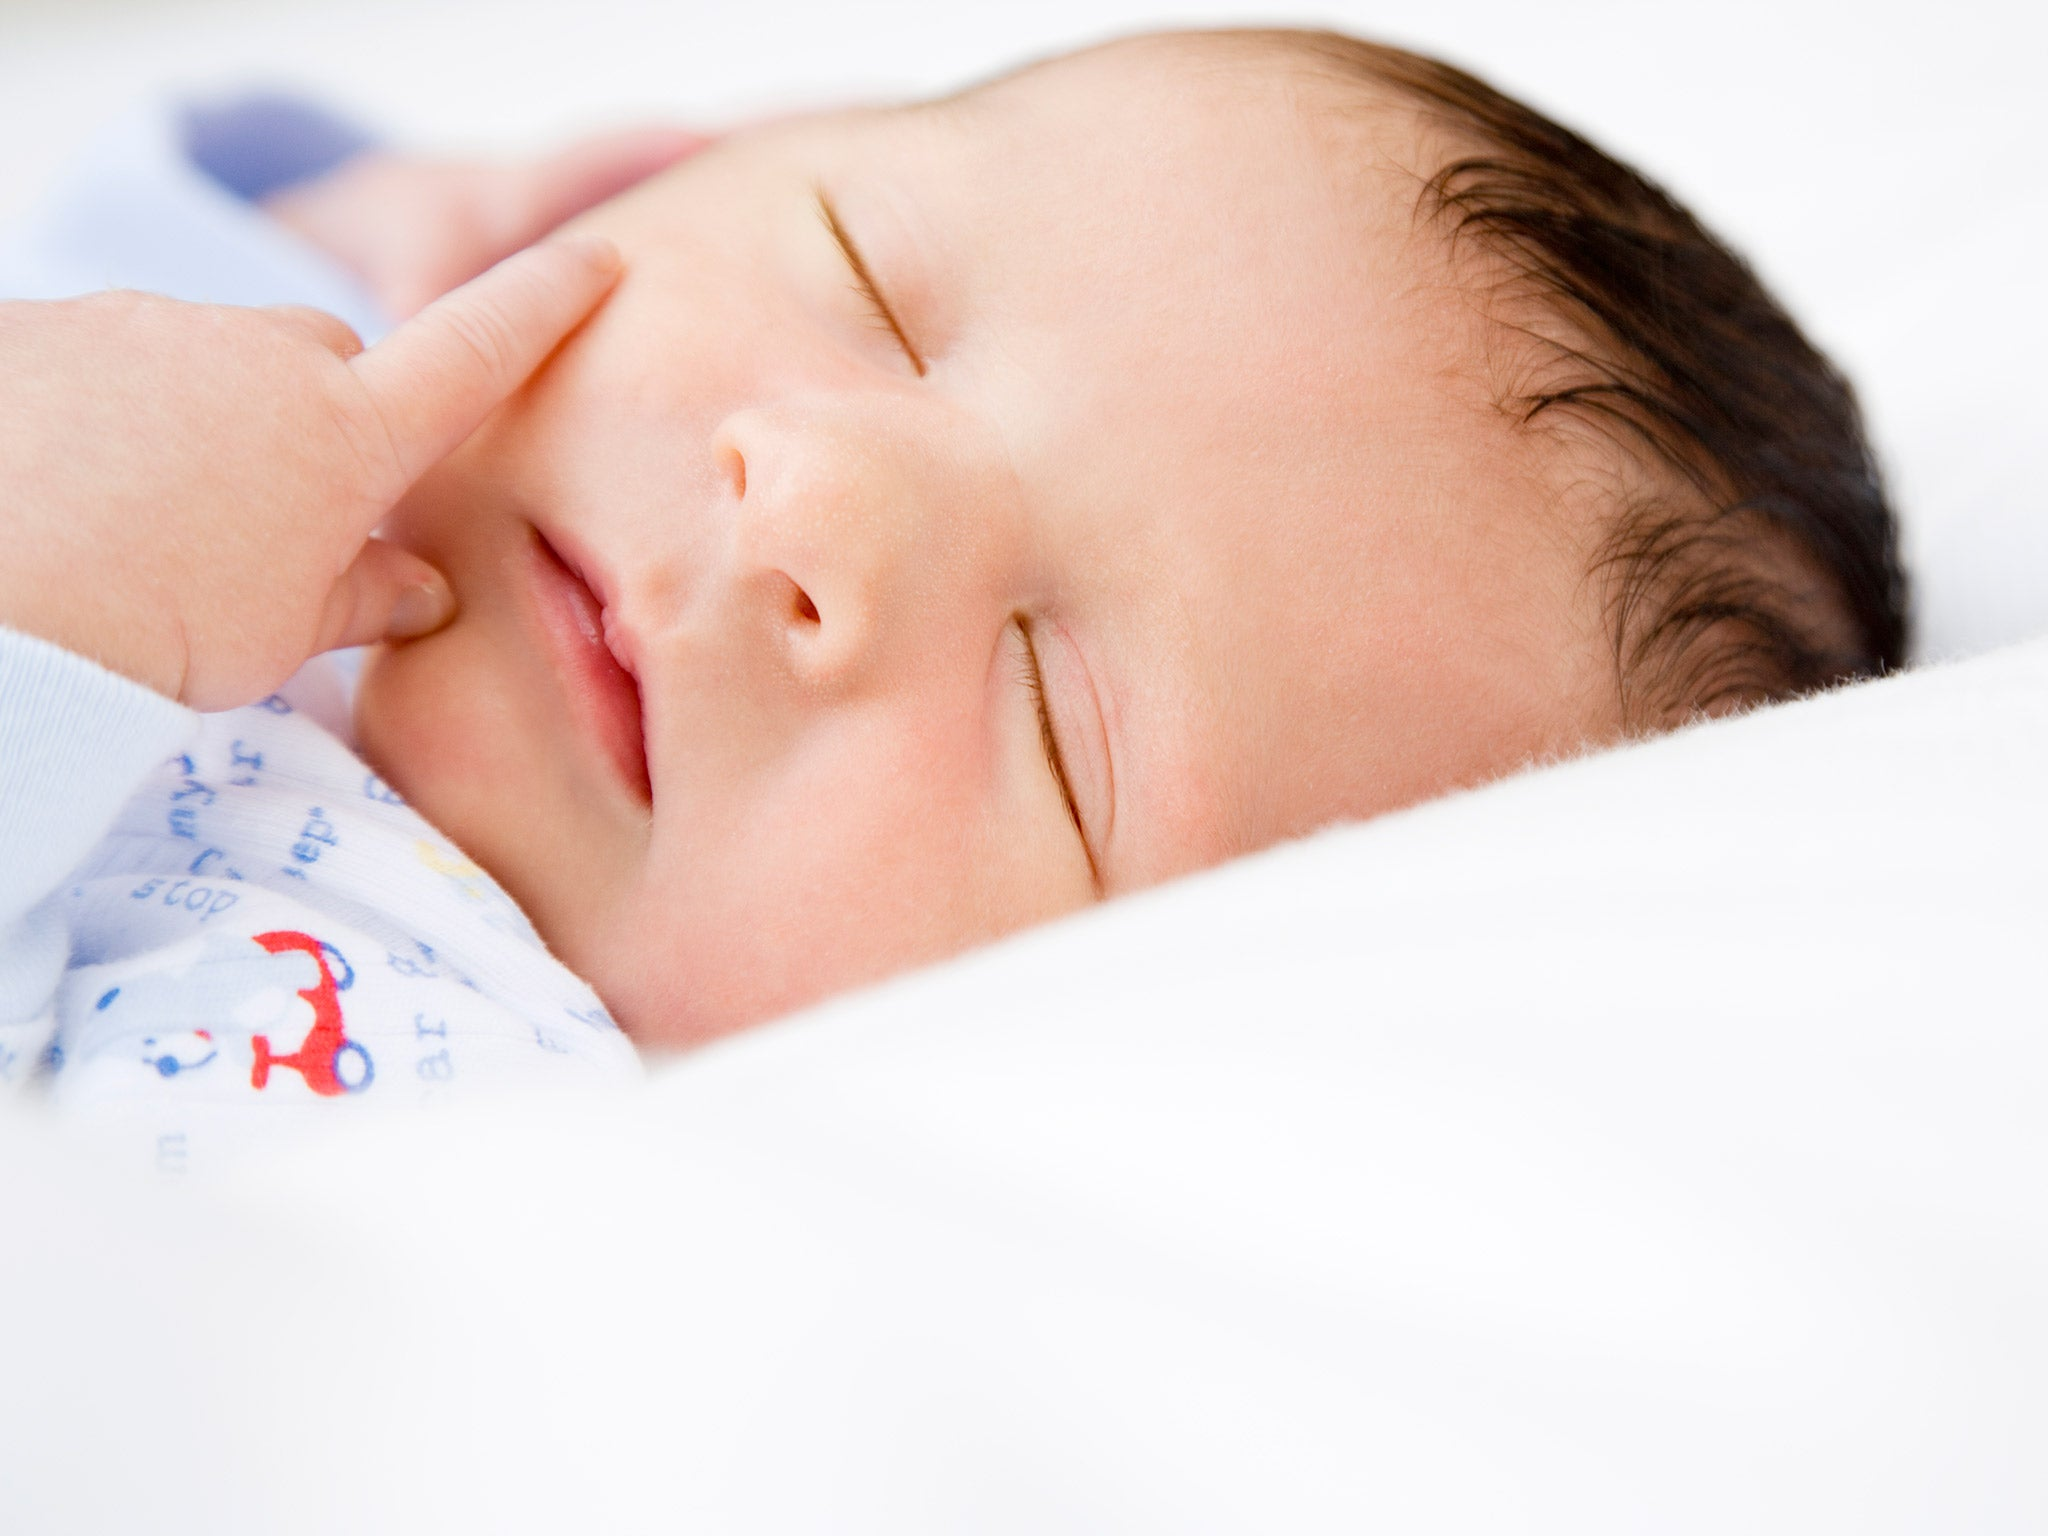 Cocoons for newborns - cutting-edge items indispensable for parents